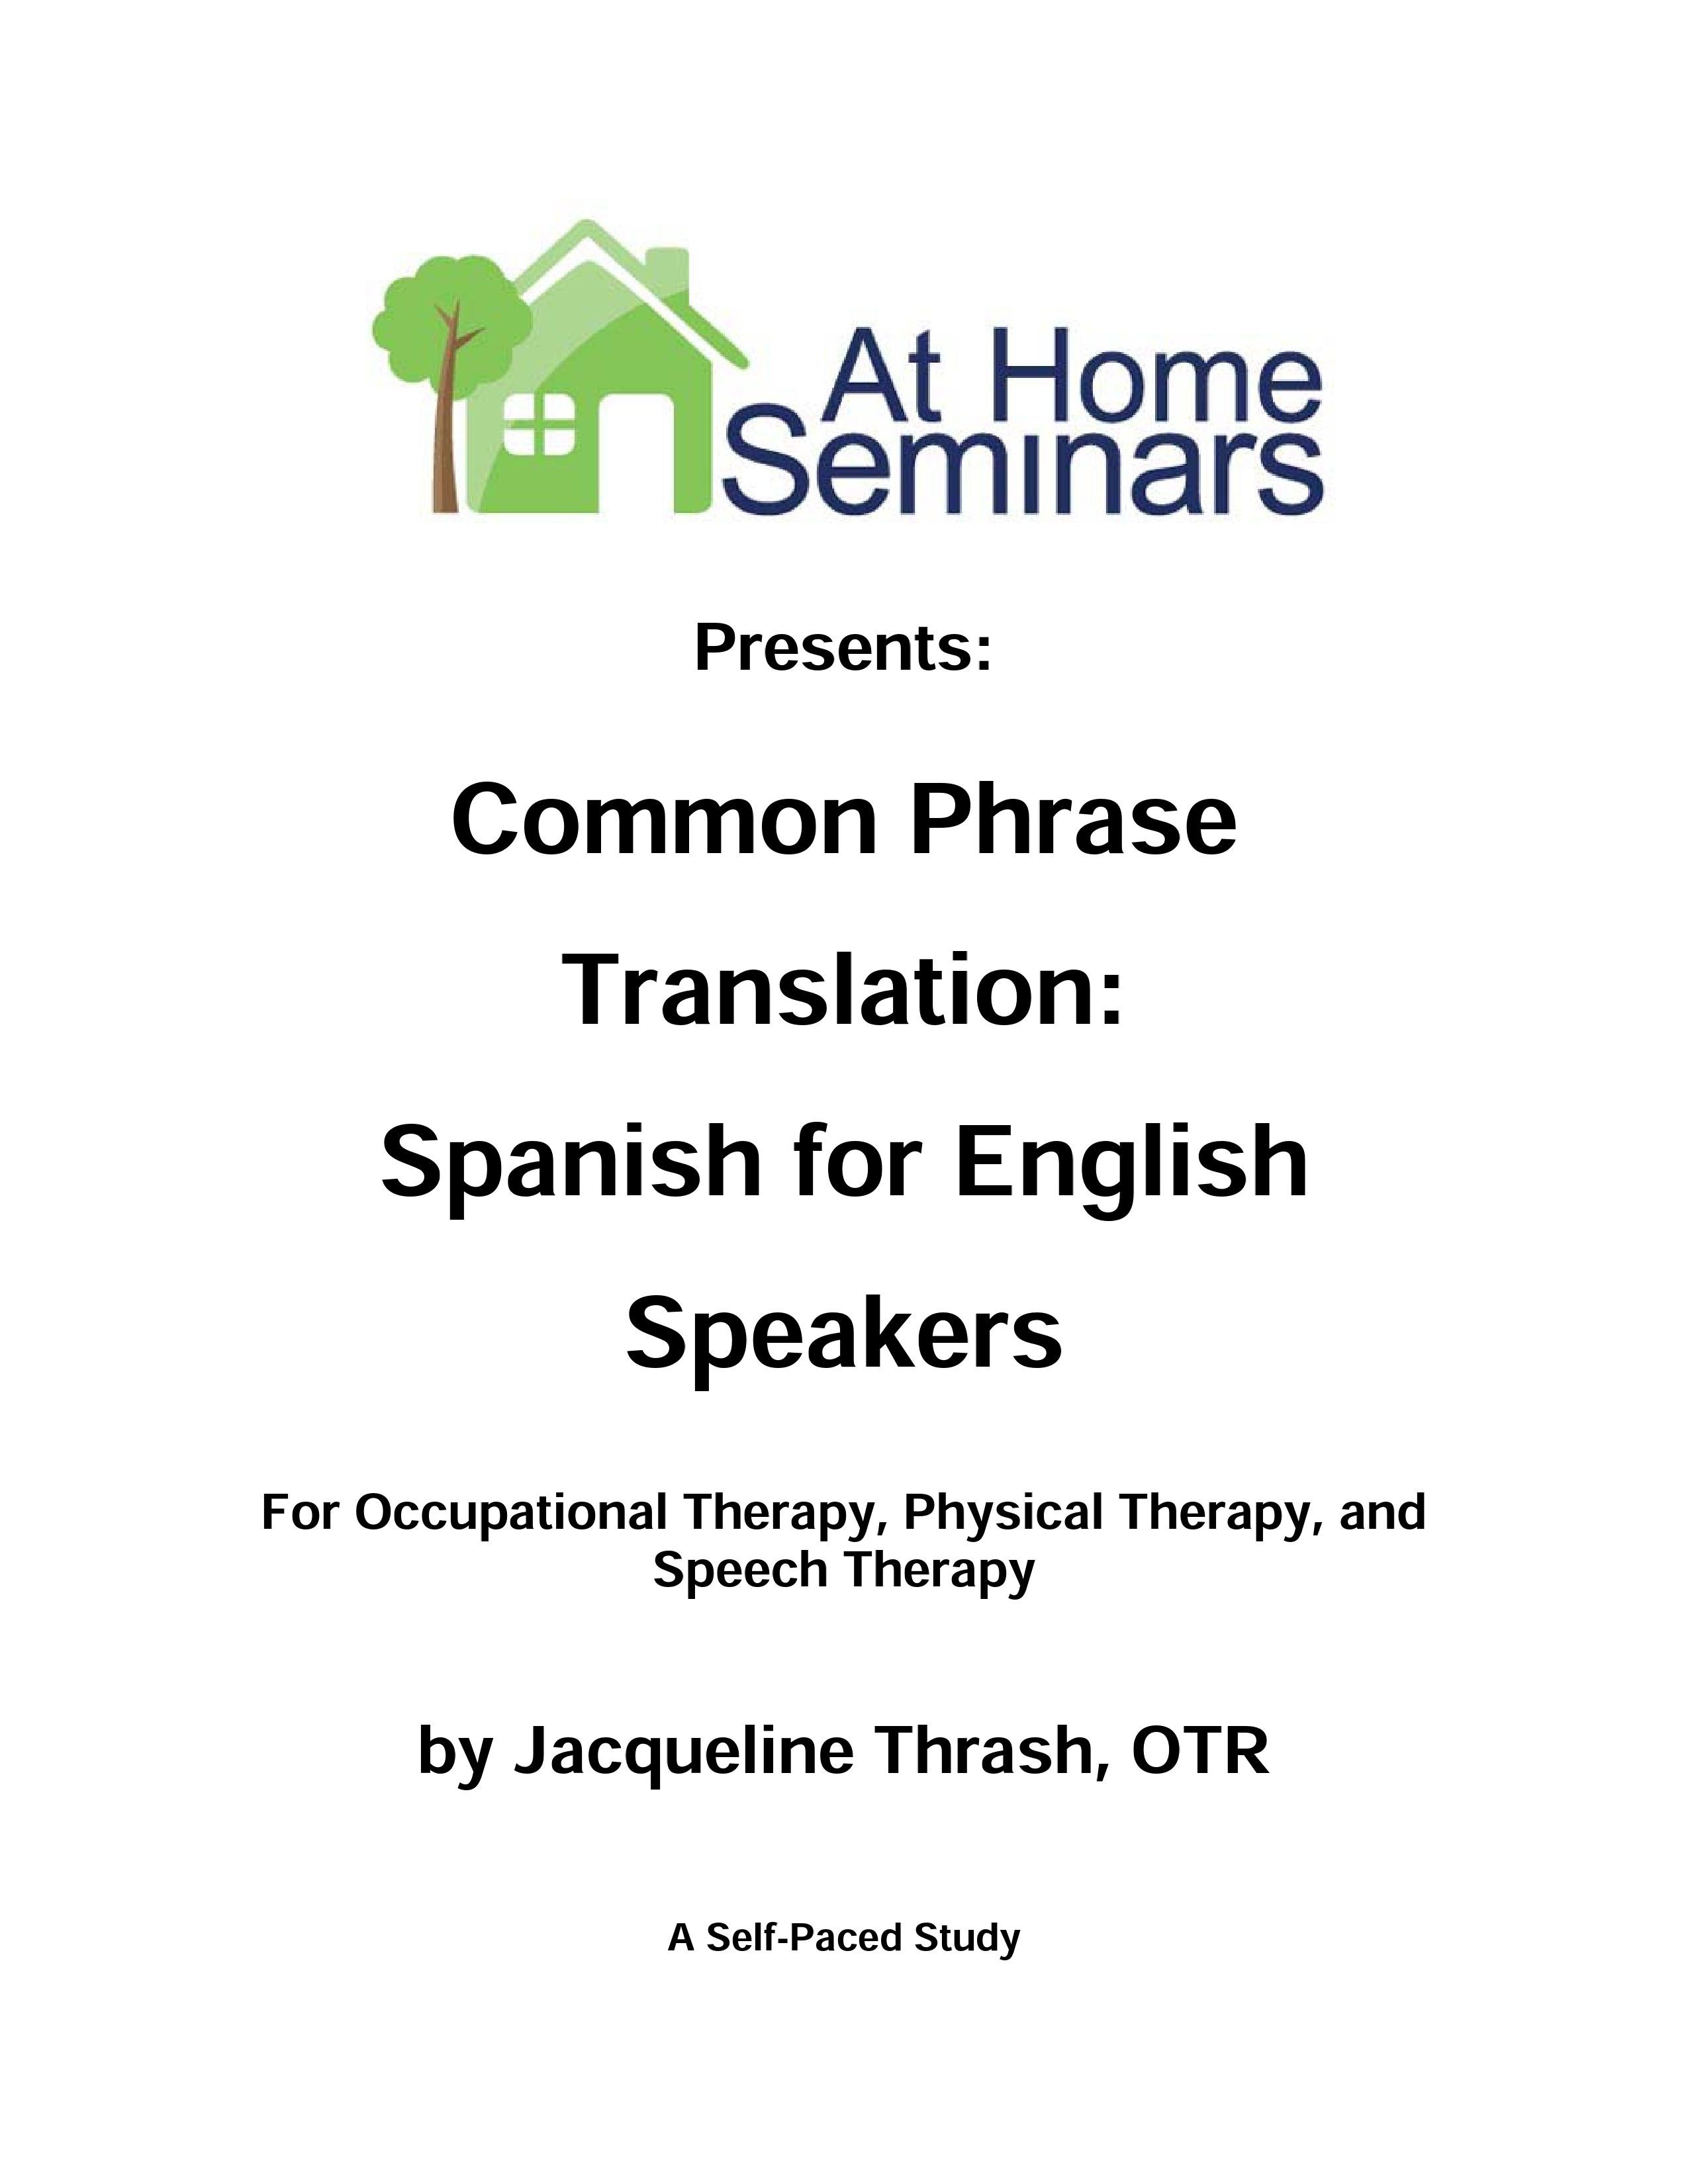 Common Phrase Translation Spanish For English Speakers Physical Therapy Occupational Therapy